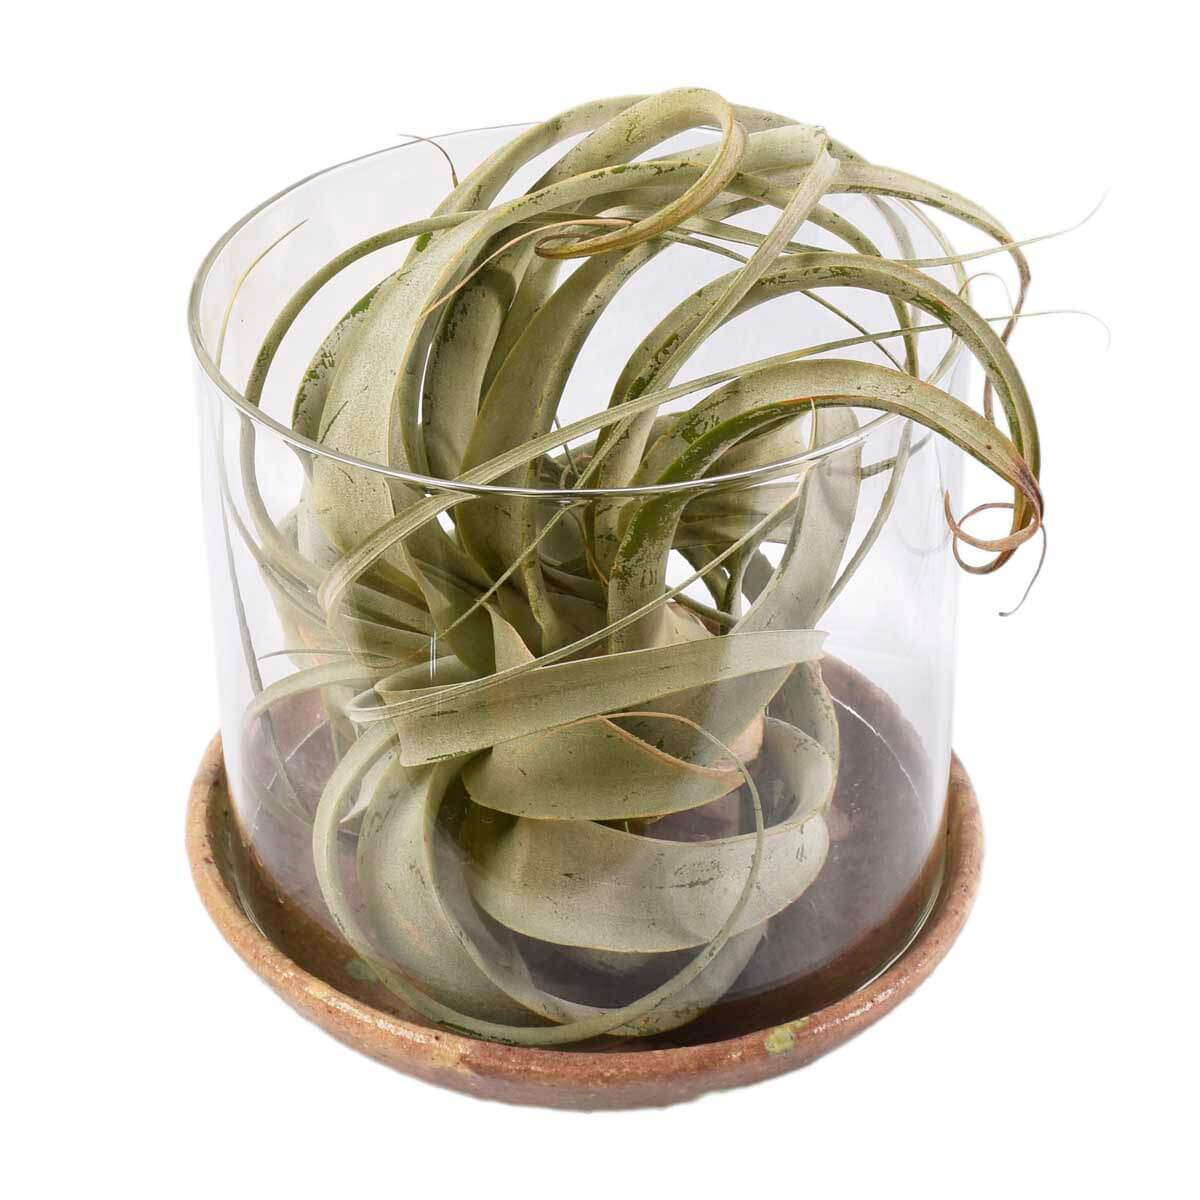 Vancouver Air Plant Delivery - Tillandsia - Adele Rae Floral and Plant Shop